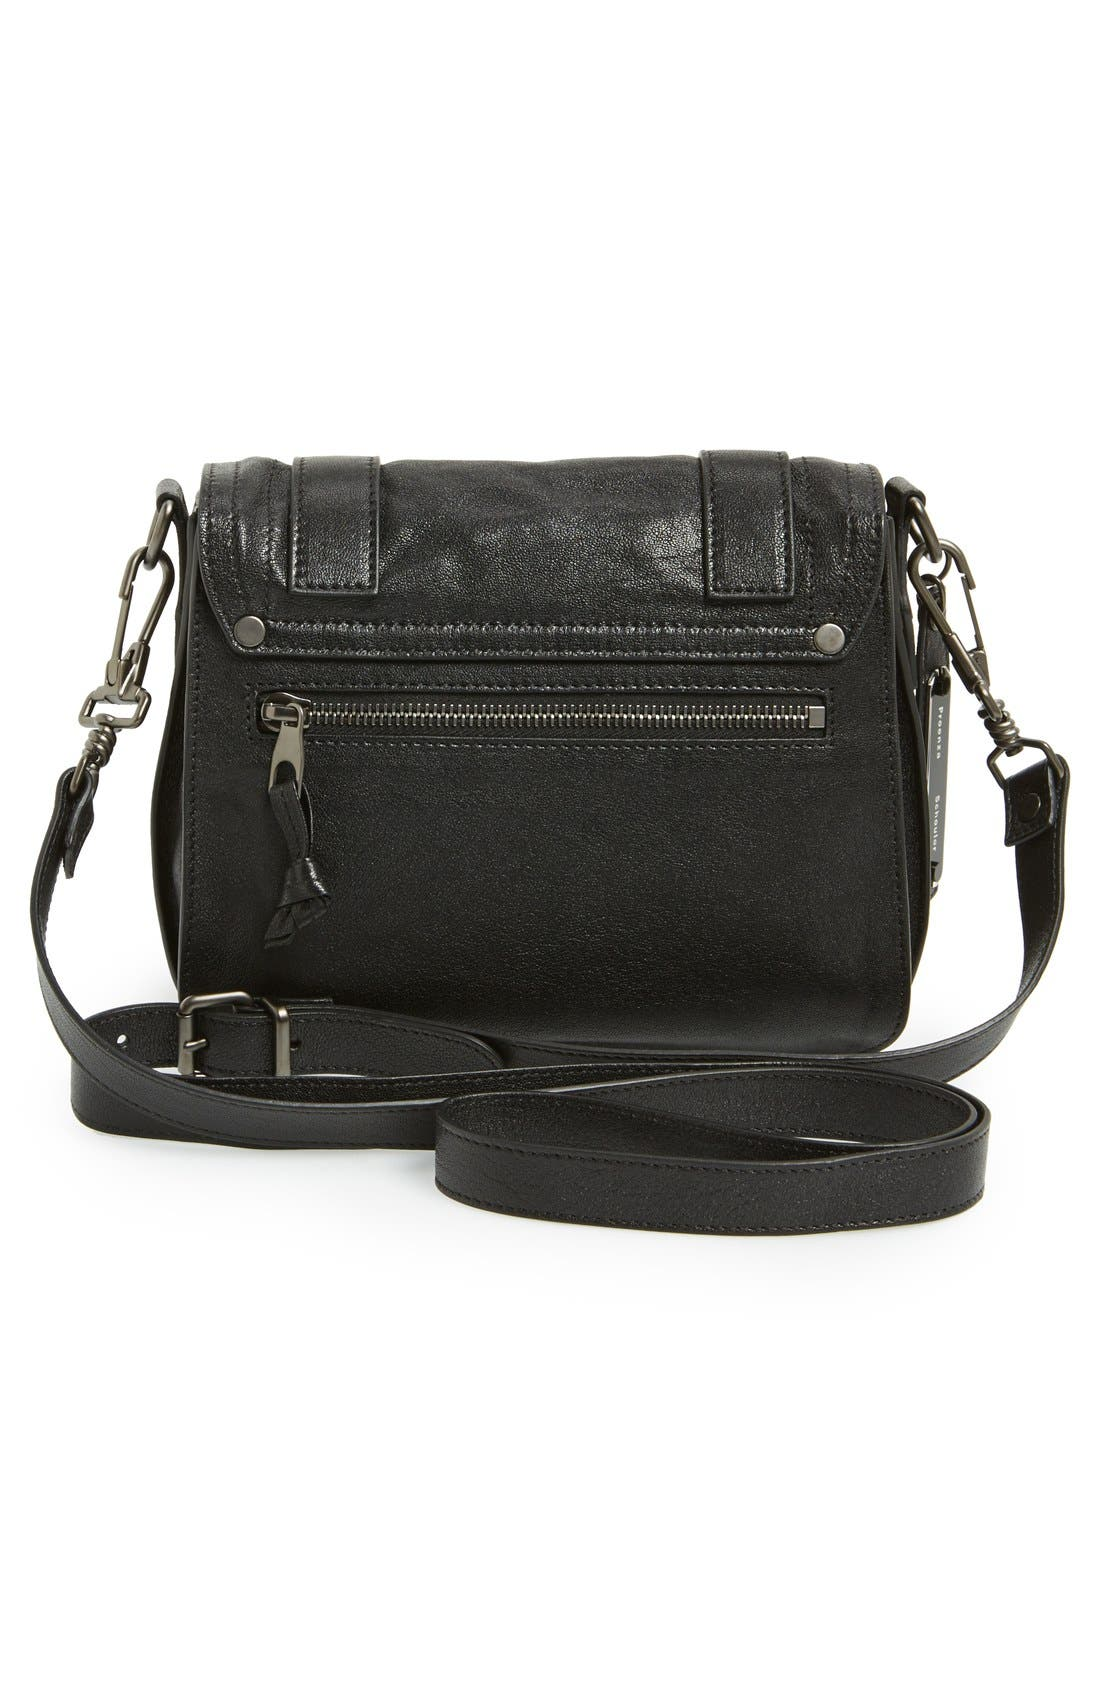 'PS1' Fringed Crossbody Pouch,                             Alternate thumbnail 3, color,                             001